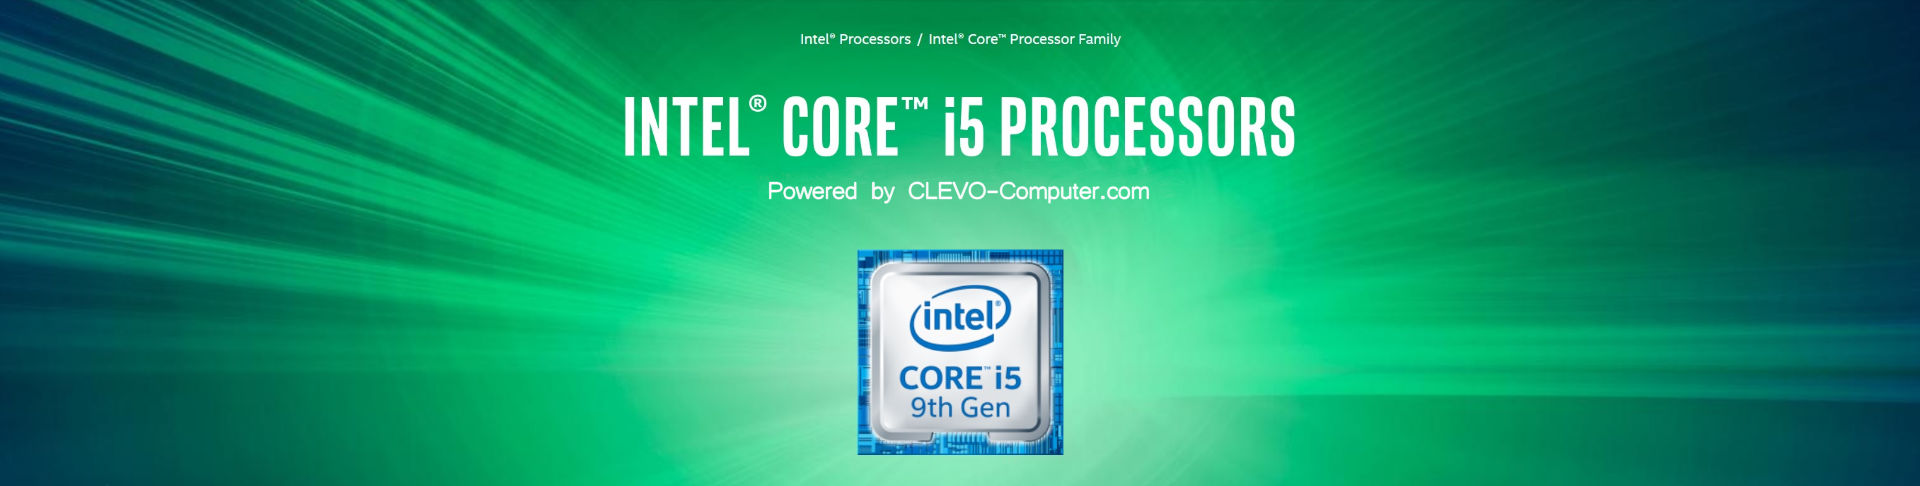 intel-9th-gen-core-i5-desktop-cpu-powered-by-clevo-computer